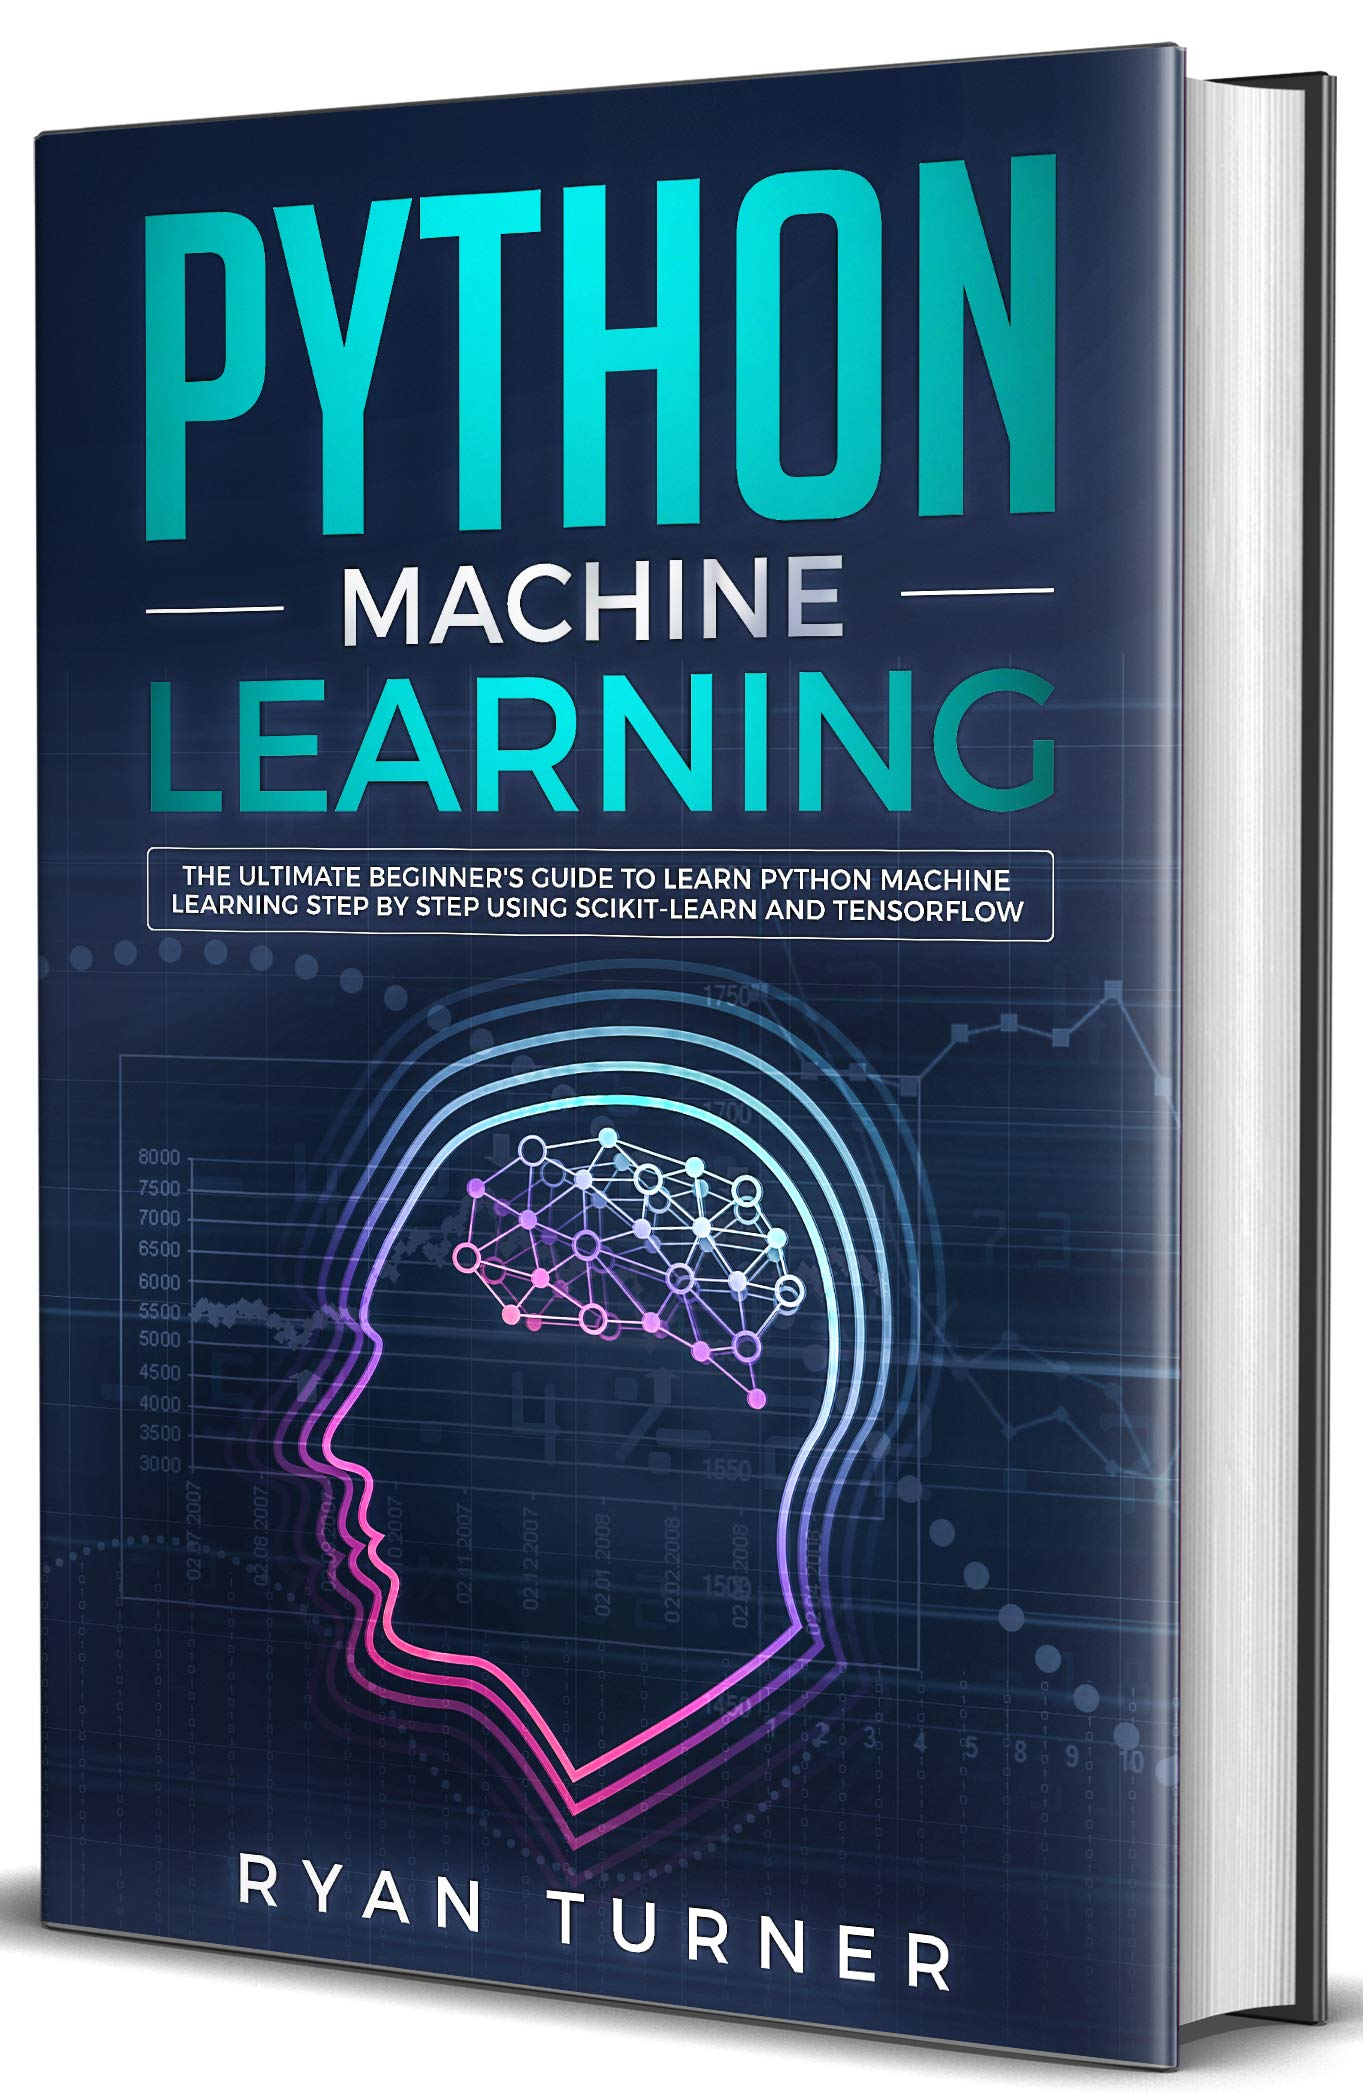 Python Machine Learning : The Ultimate Beginner's Guide to Learn Python Machine Learning Step by Step Using Scikit-Learn and Tensorflow por Ryan Turner